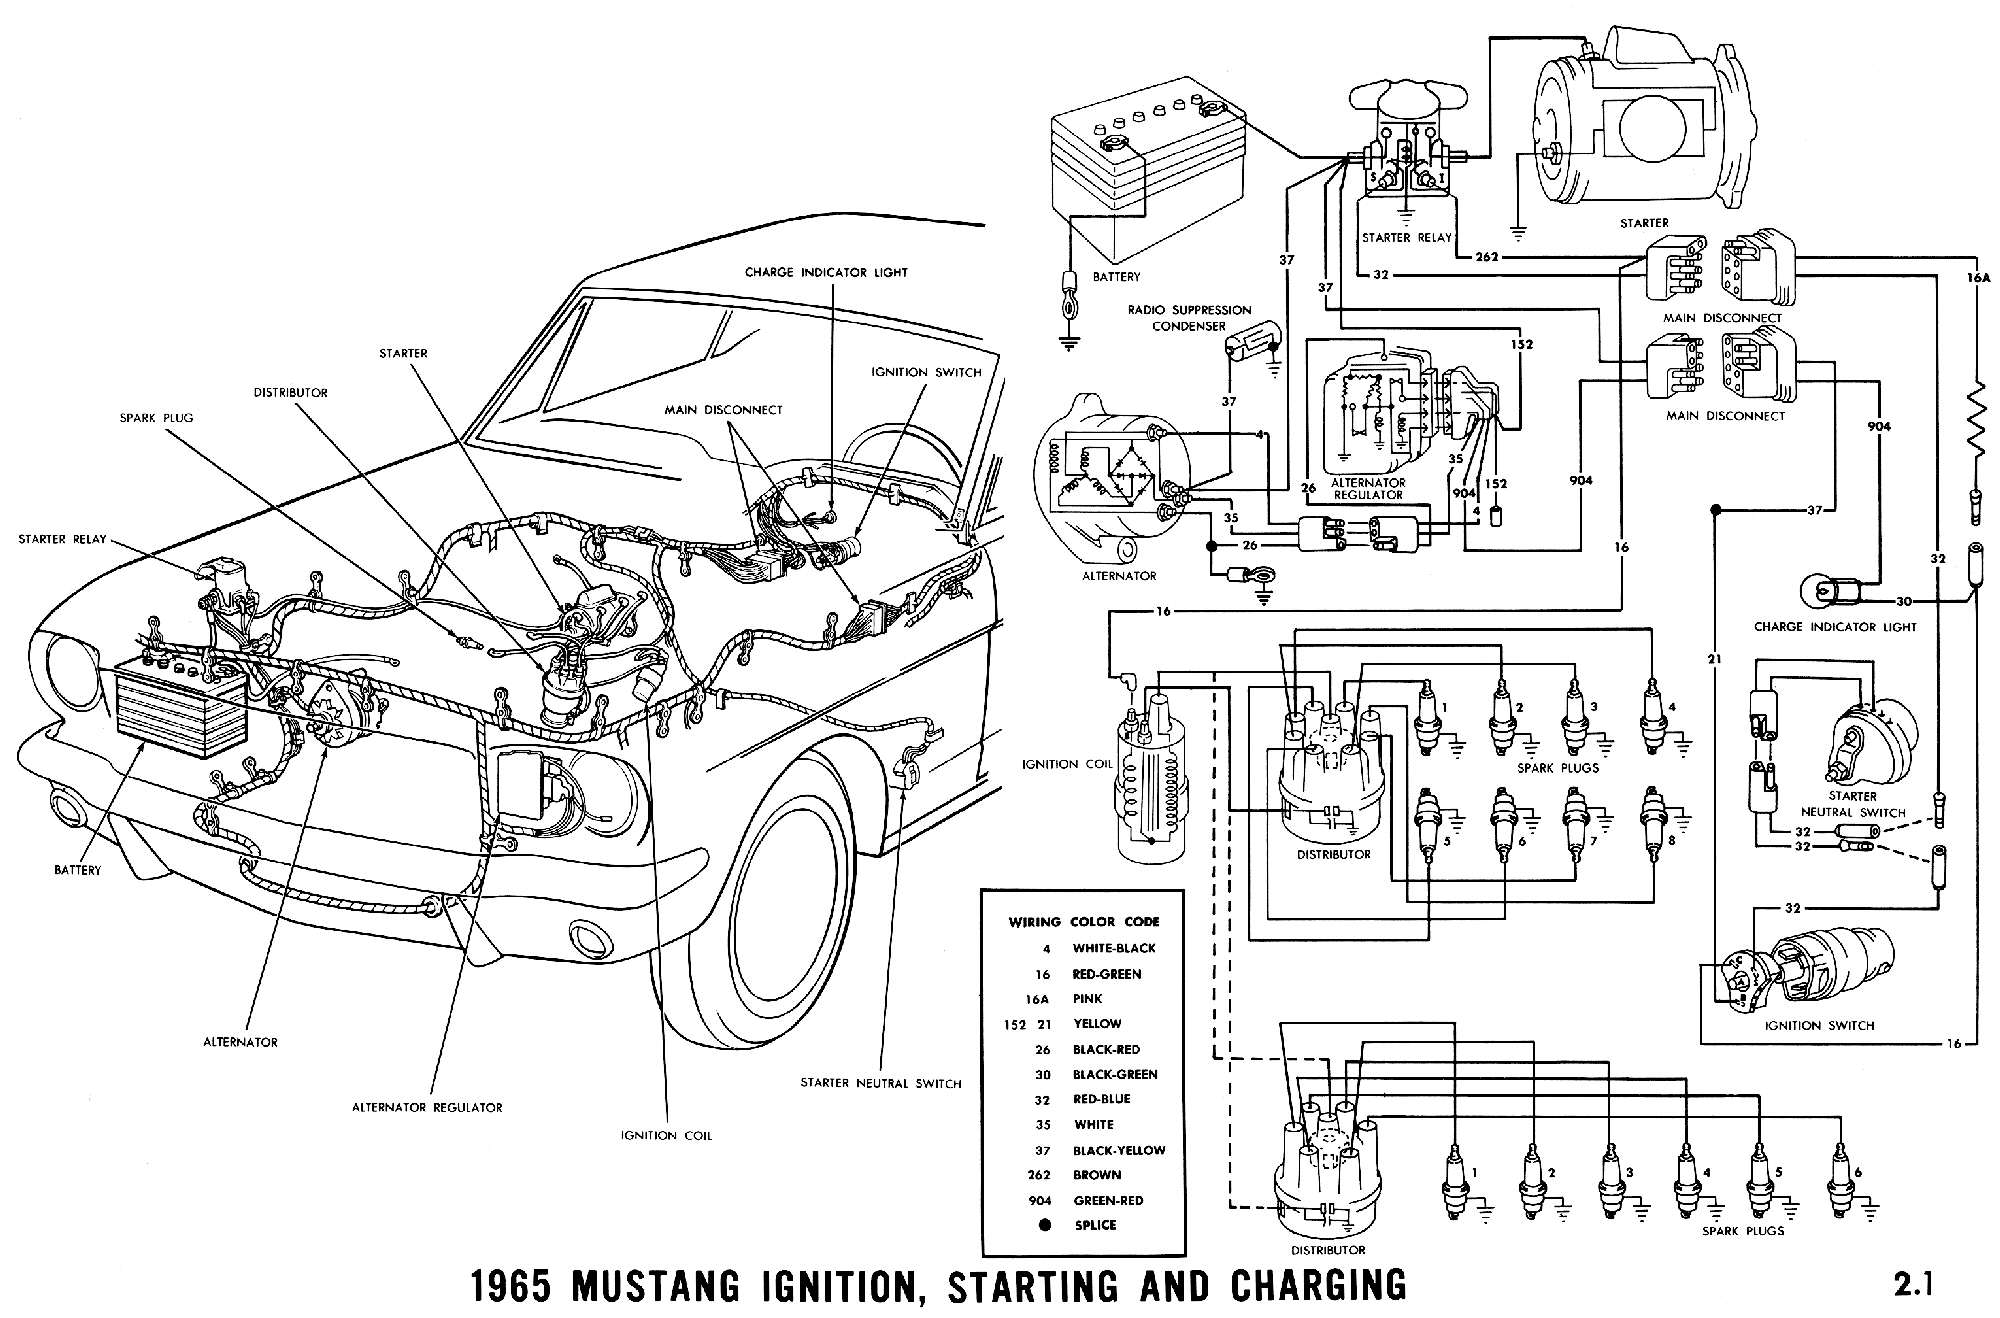 1965c 1965 mustang wiring diagrams average joe restoration 1966 mustang engine wire harness at bakdesigns.co